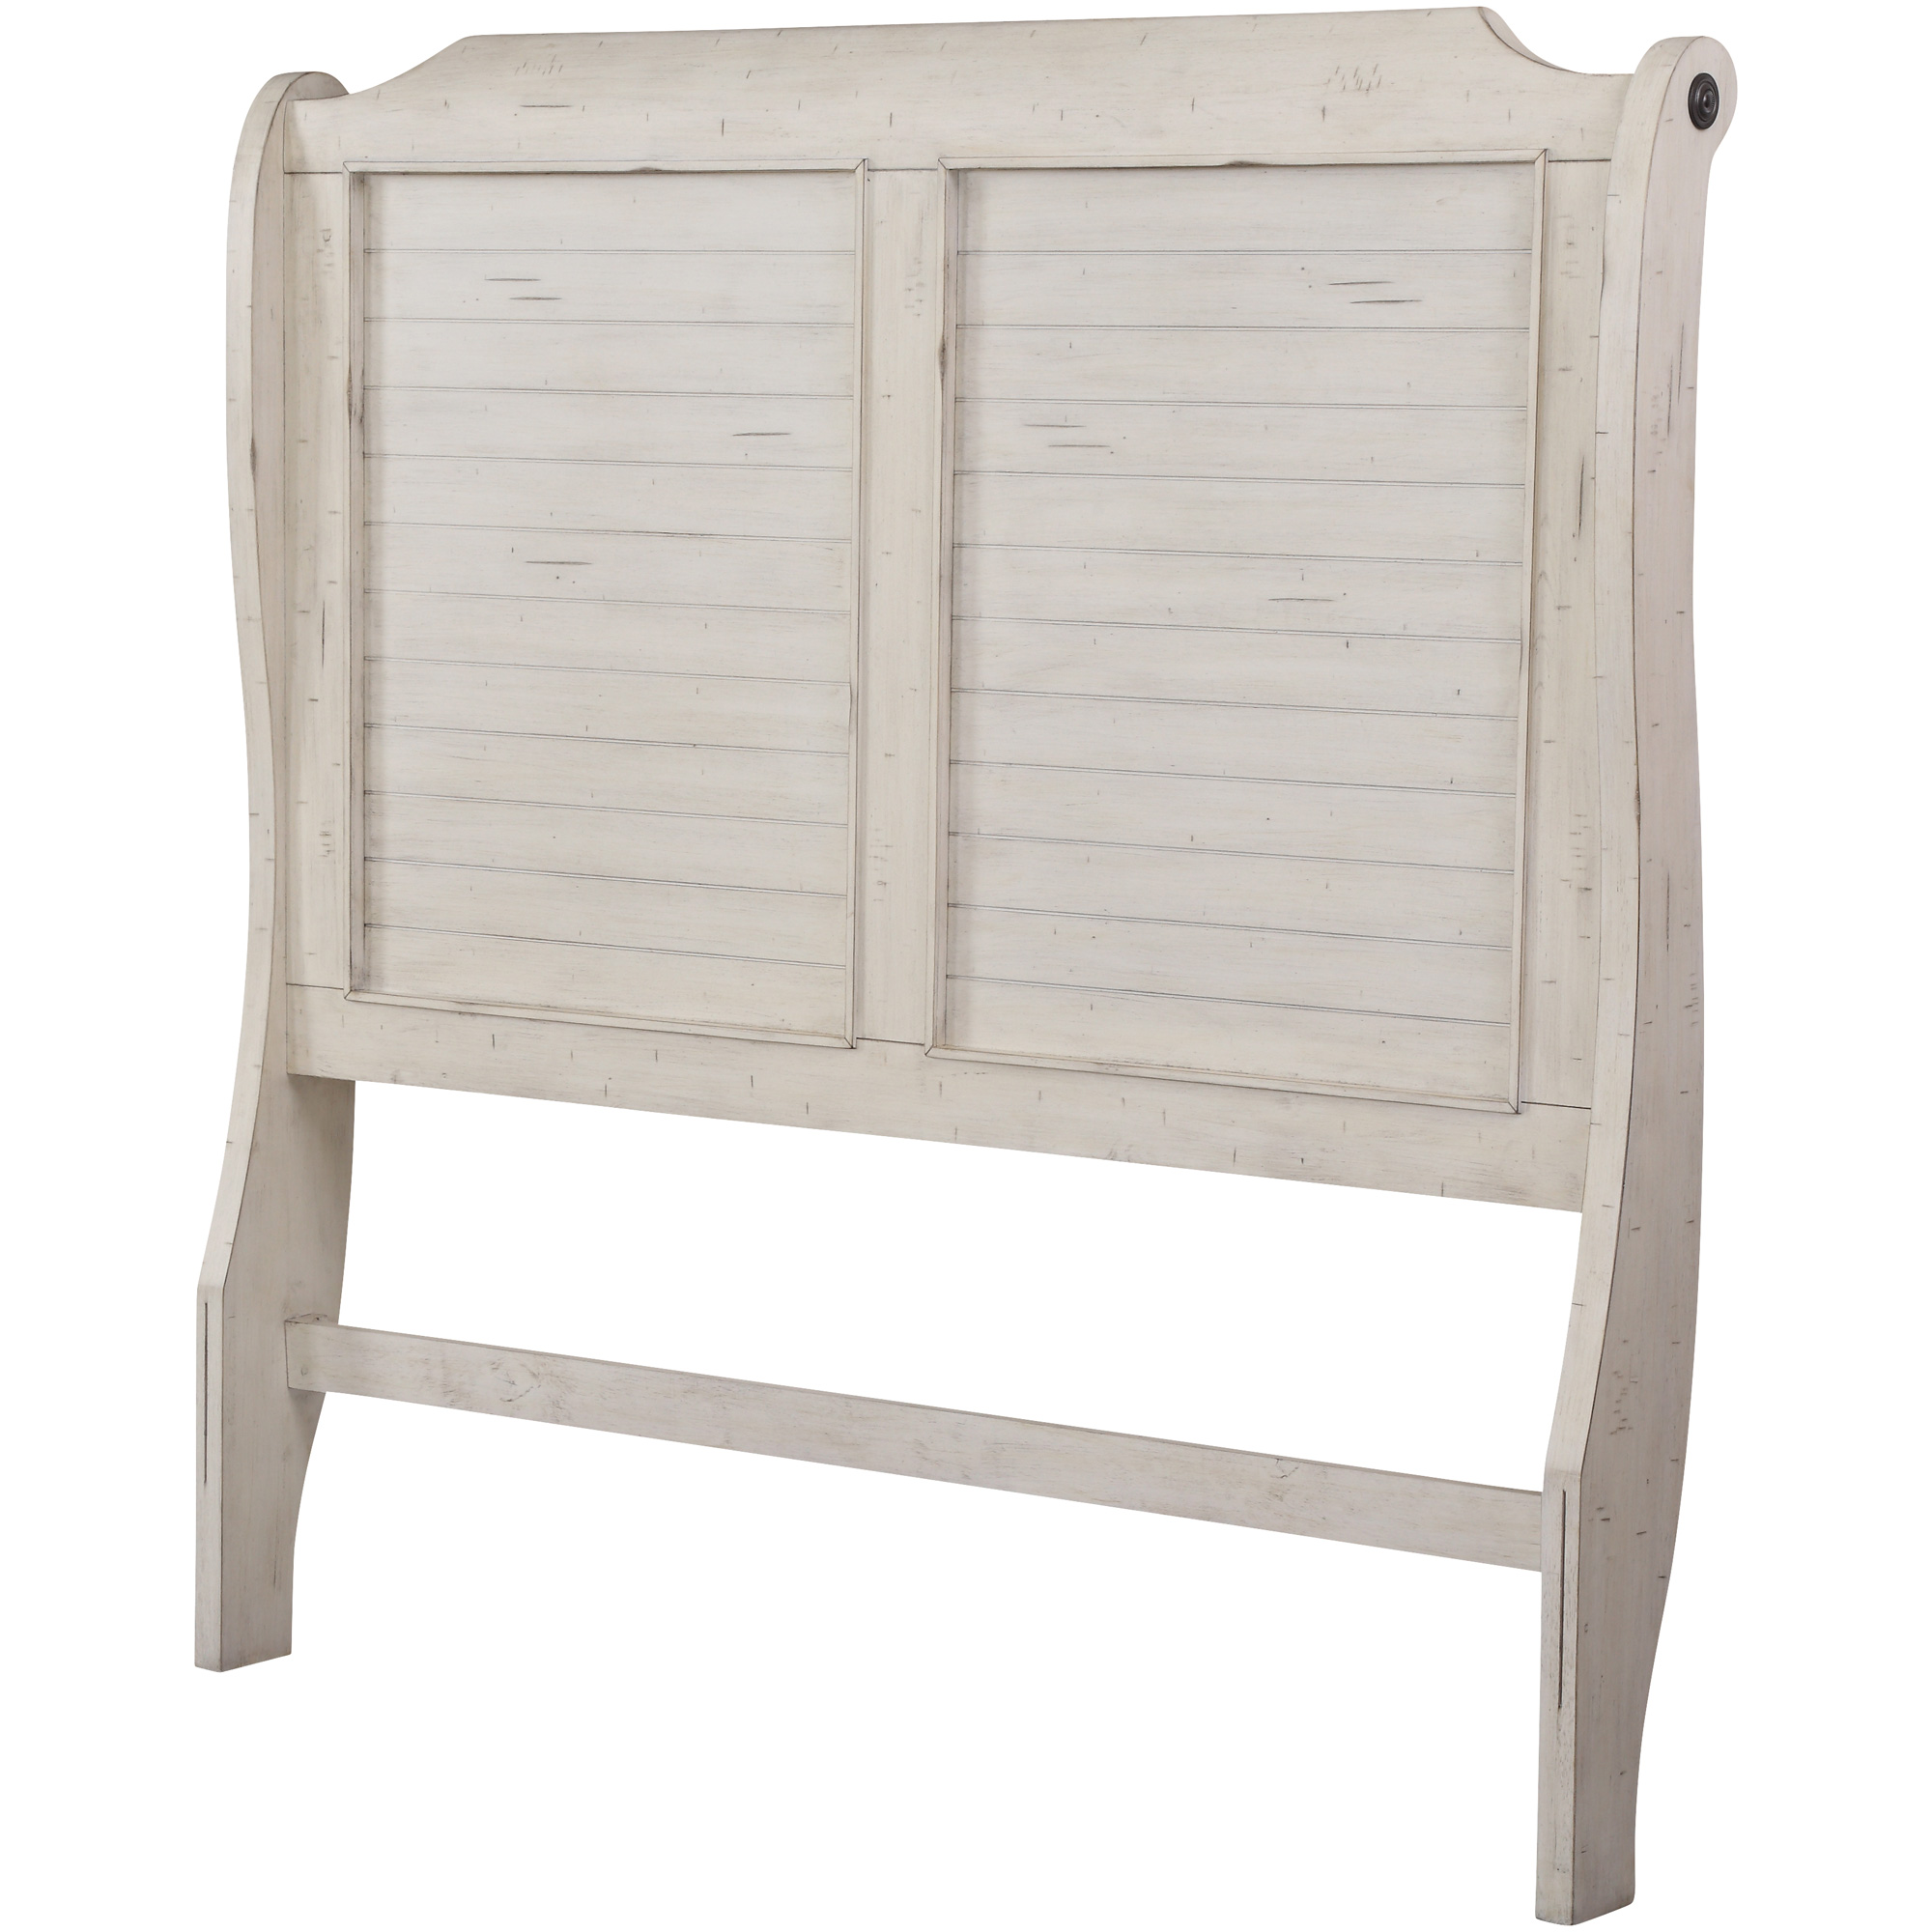 Lifestyle Enterprise | Bay Ridge White King Headboard